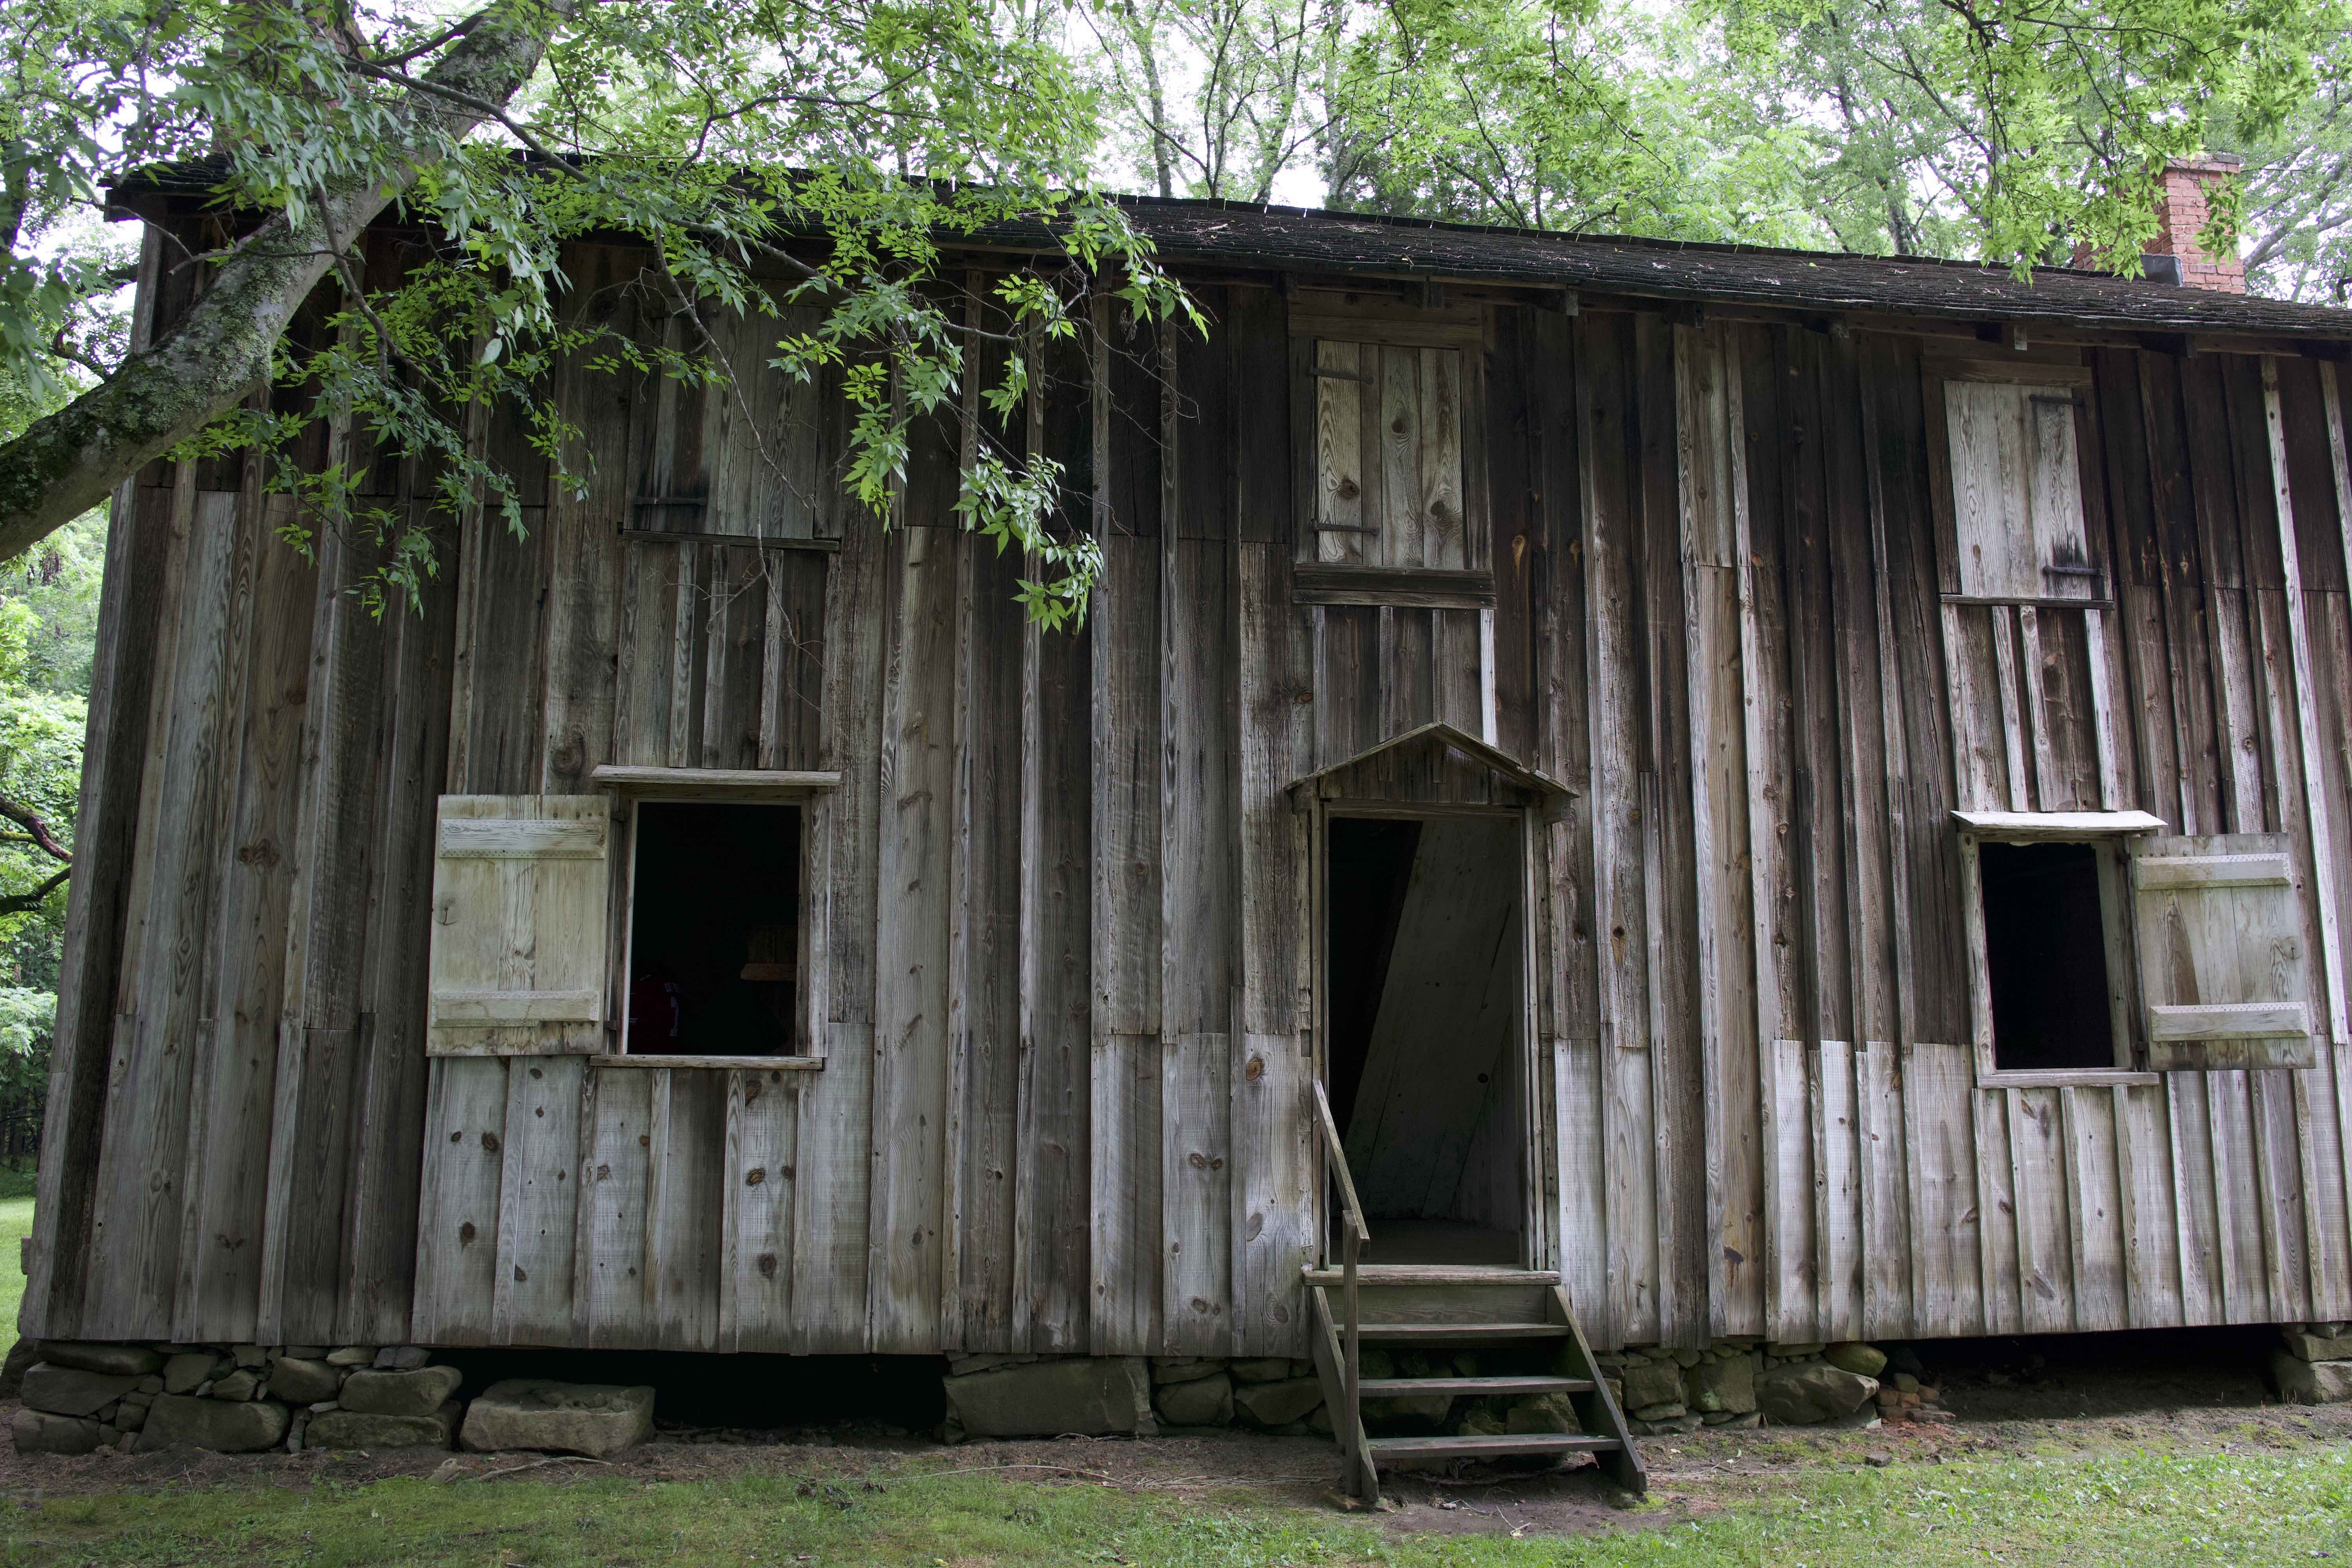 This structure - a surviving slave quarters home - is a part of the Horton Grove community. Brick insulation provided a layer of protection for slave families and has helped the structure maintain over the years.